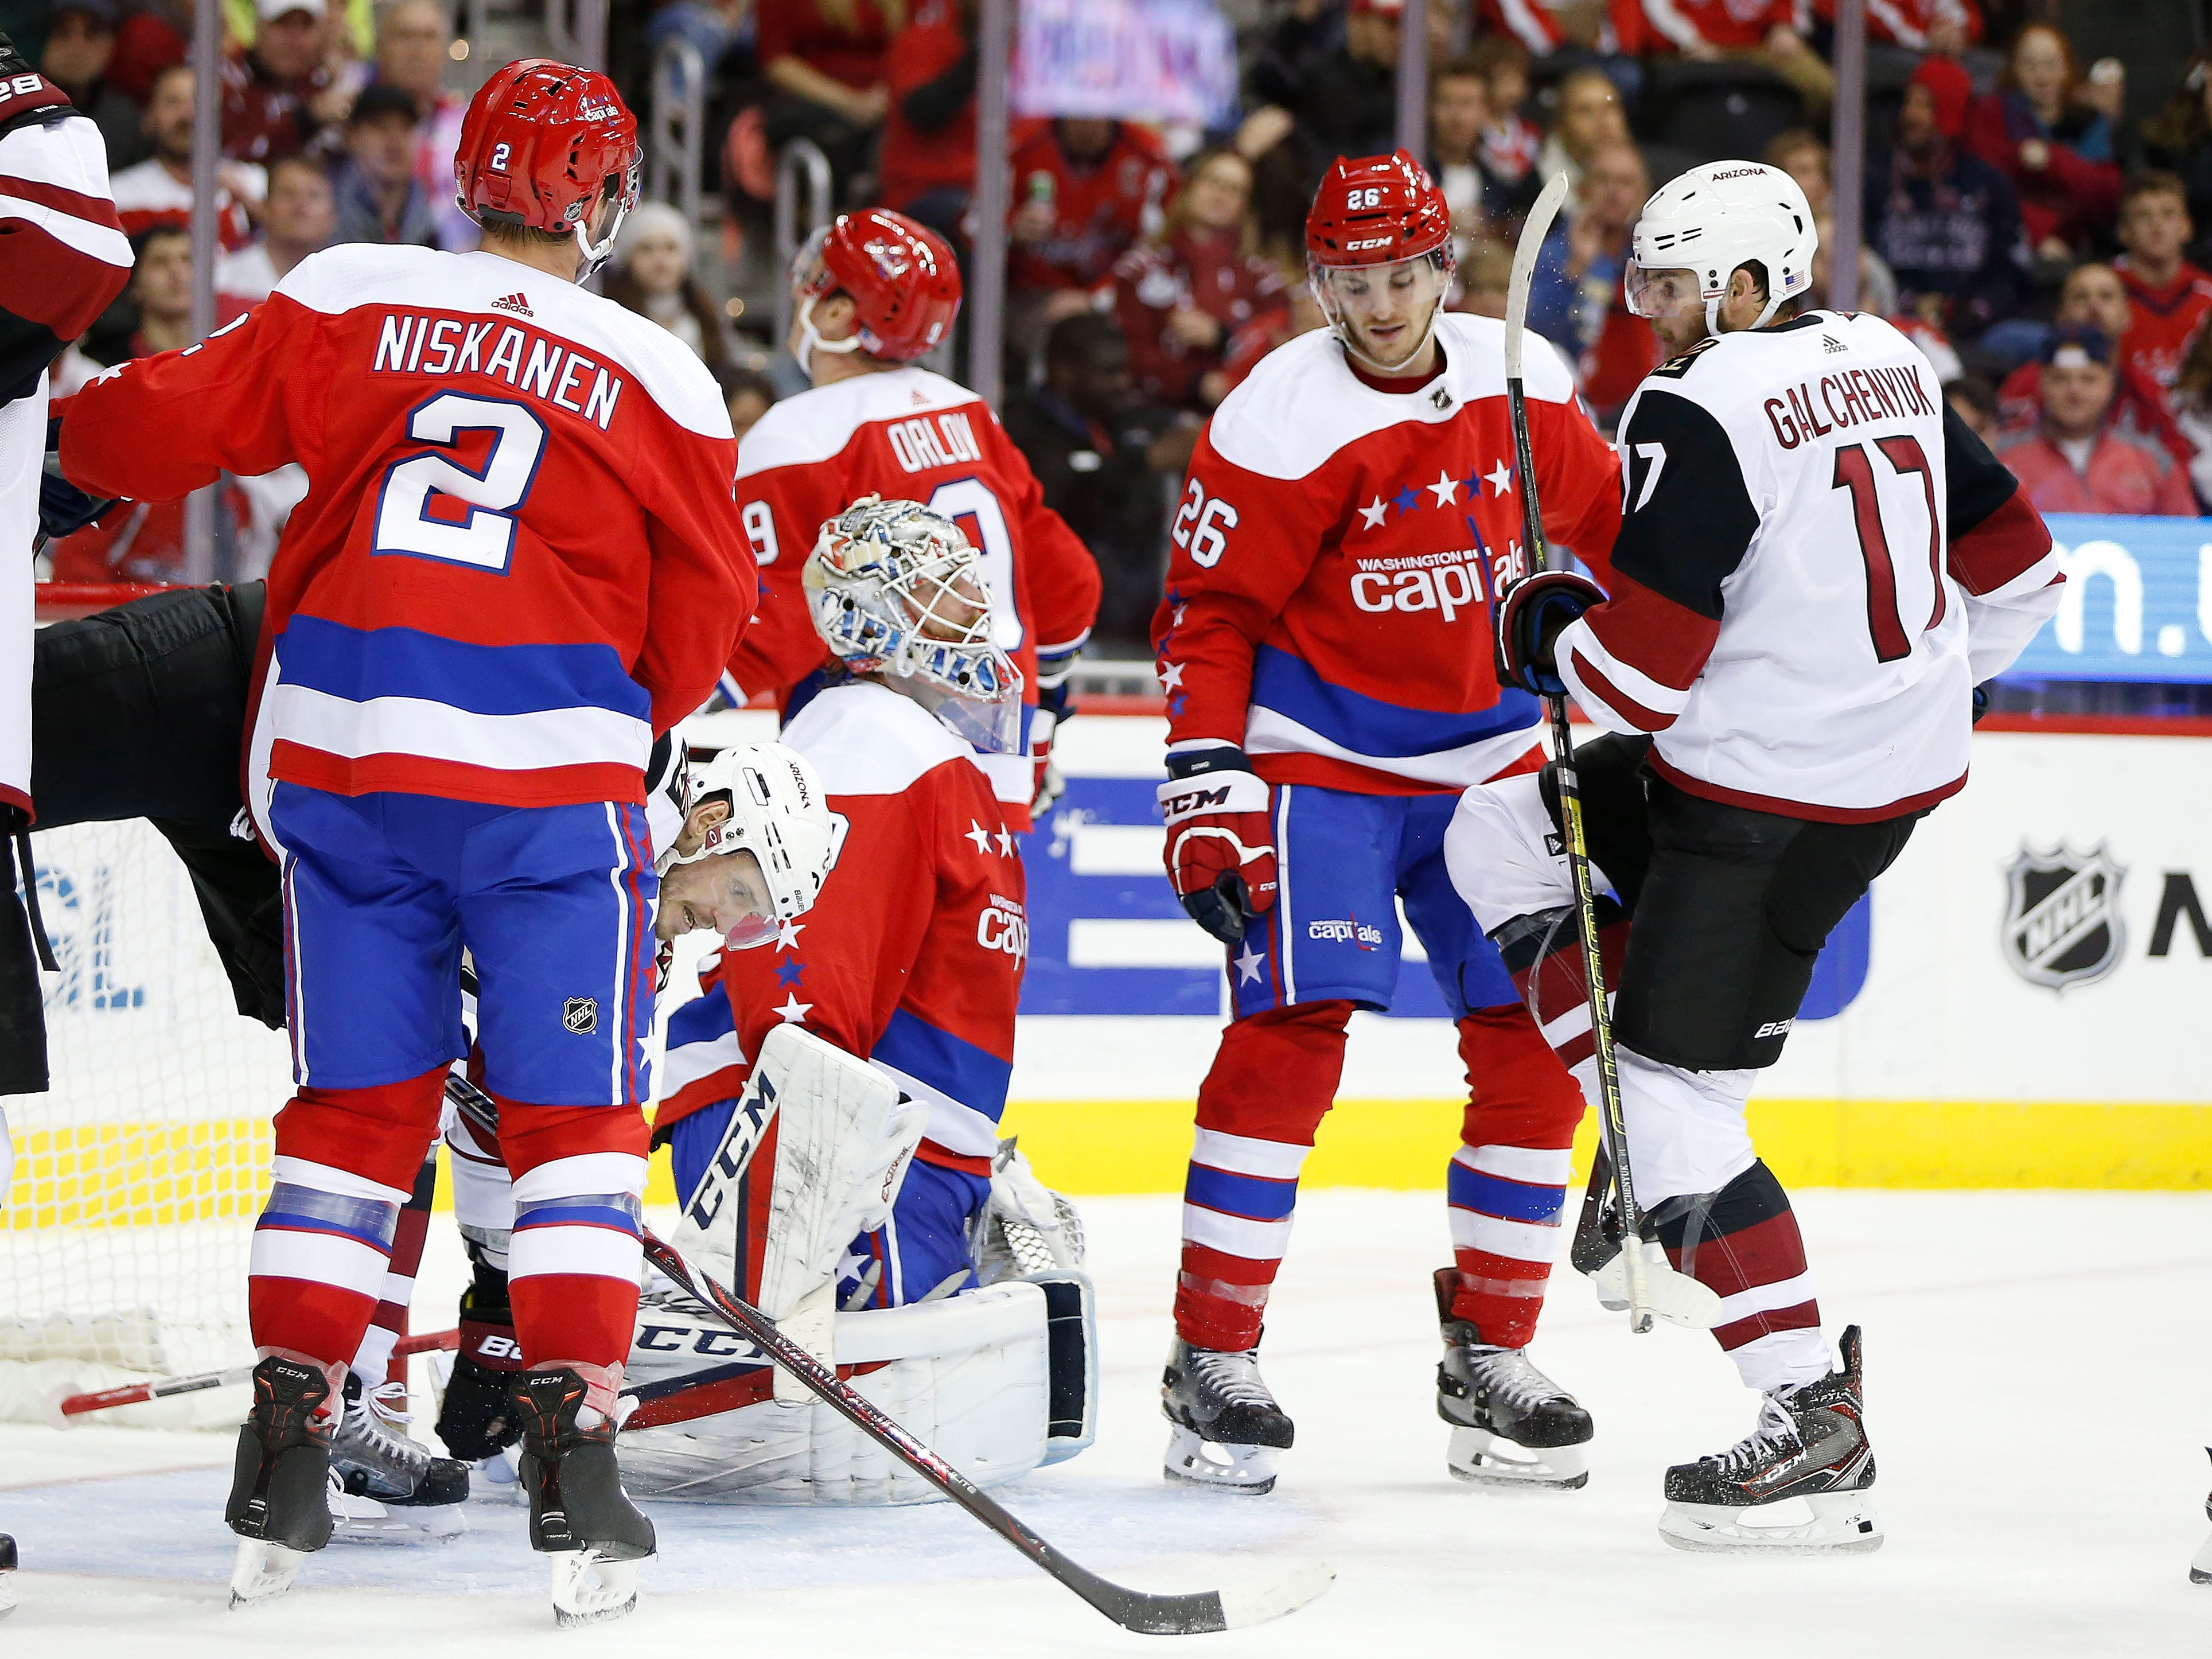 Nov 11, 2018; Washington, DC, USA; Arizona Coyotes center Alex Galchenyuk (17) celebrates after scoring a goal past Washington Capitals goaltender Braden Holtby (70) during the second period at Capital One Arena. Mandatory Credit: Amber Searls-USA TODAY Sports